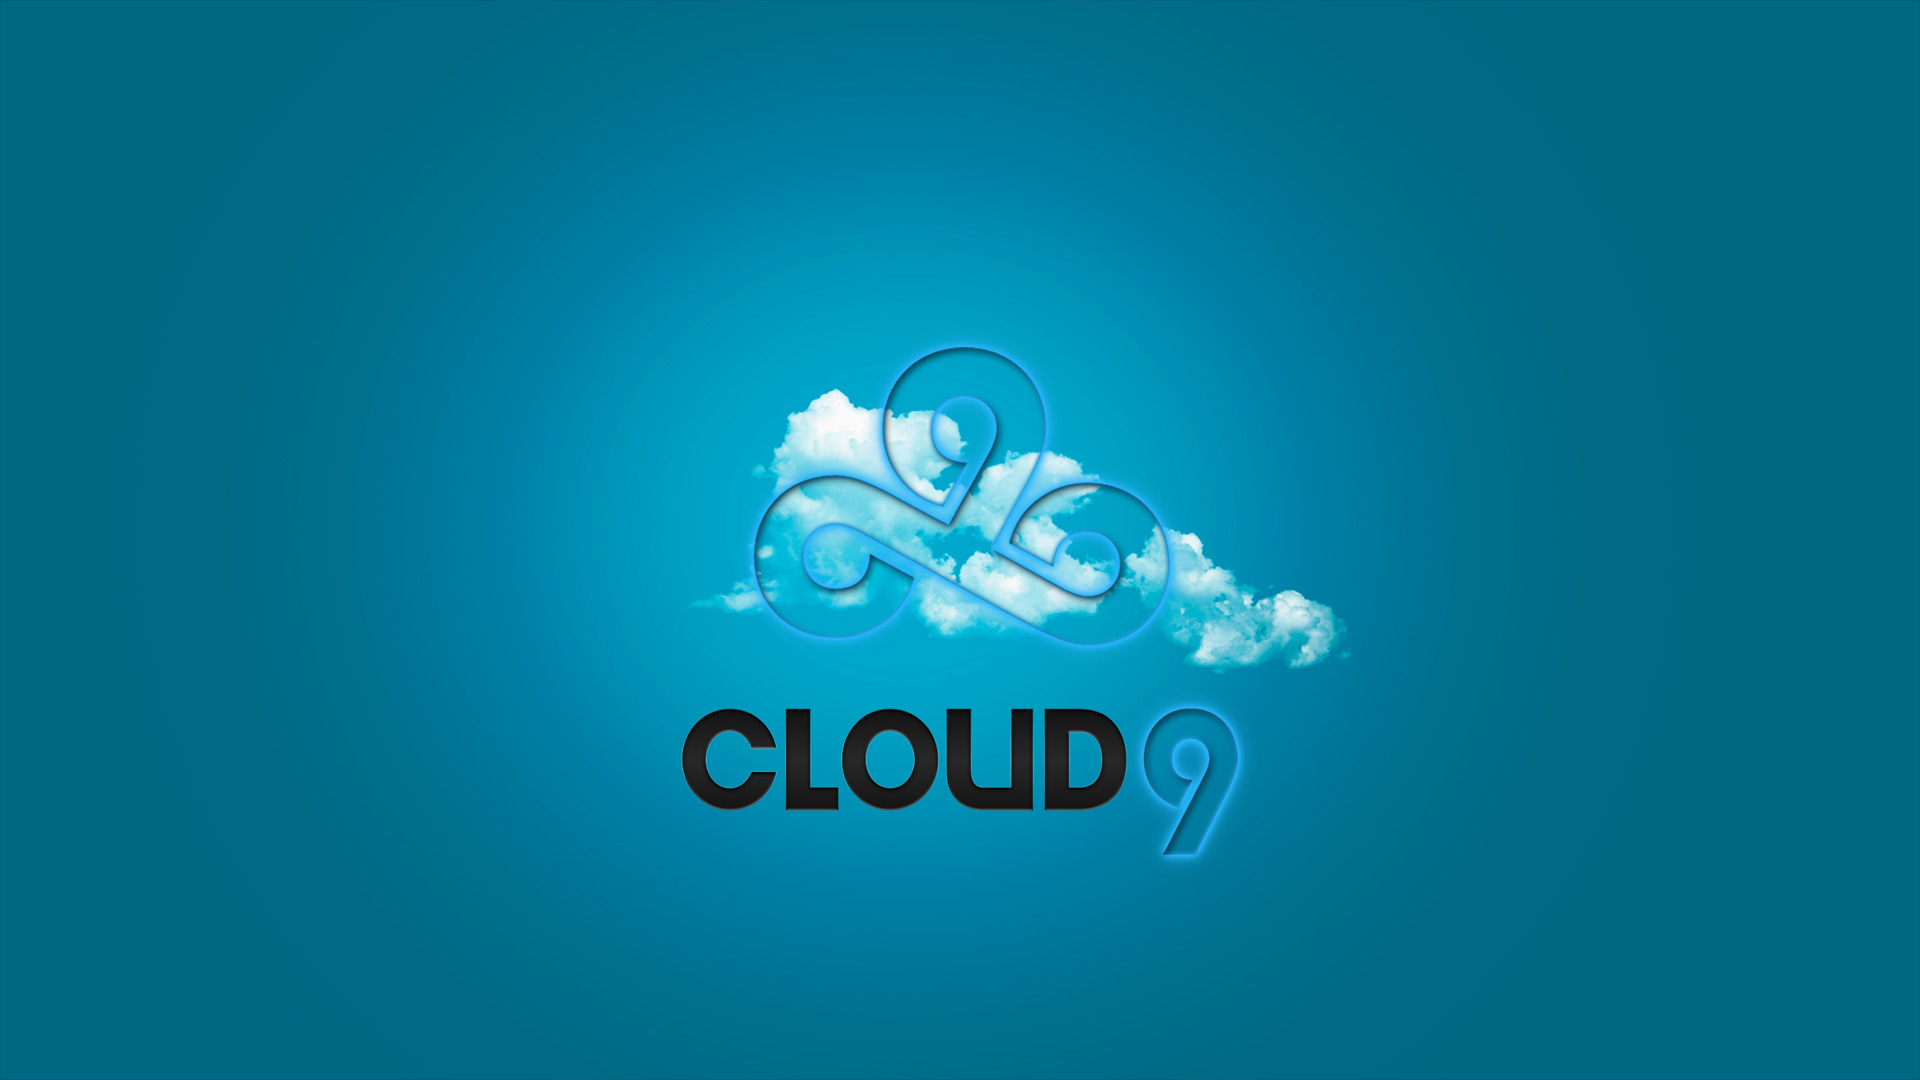 cloud 9 wallpaper league of legends